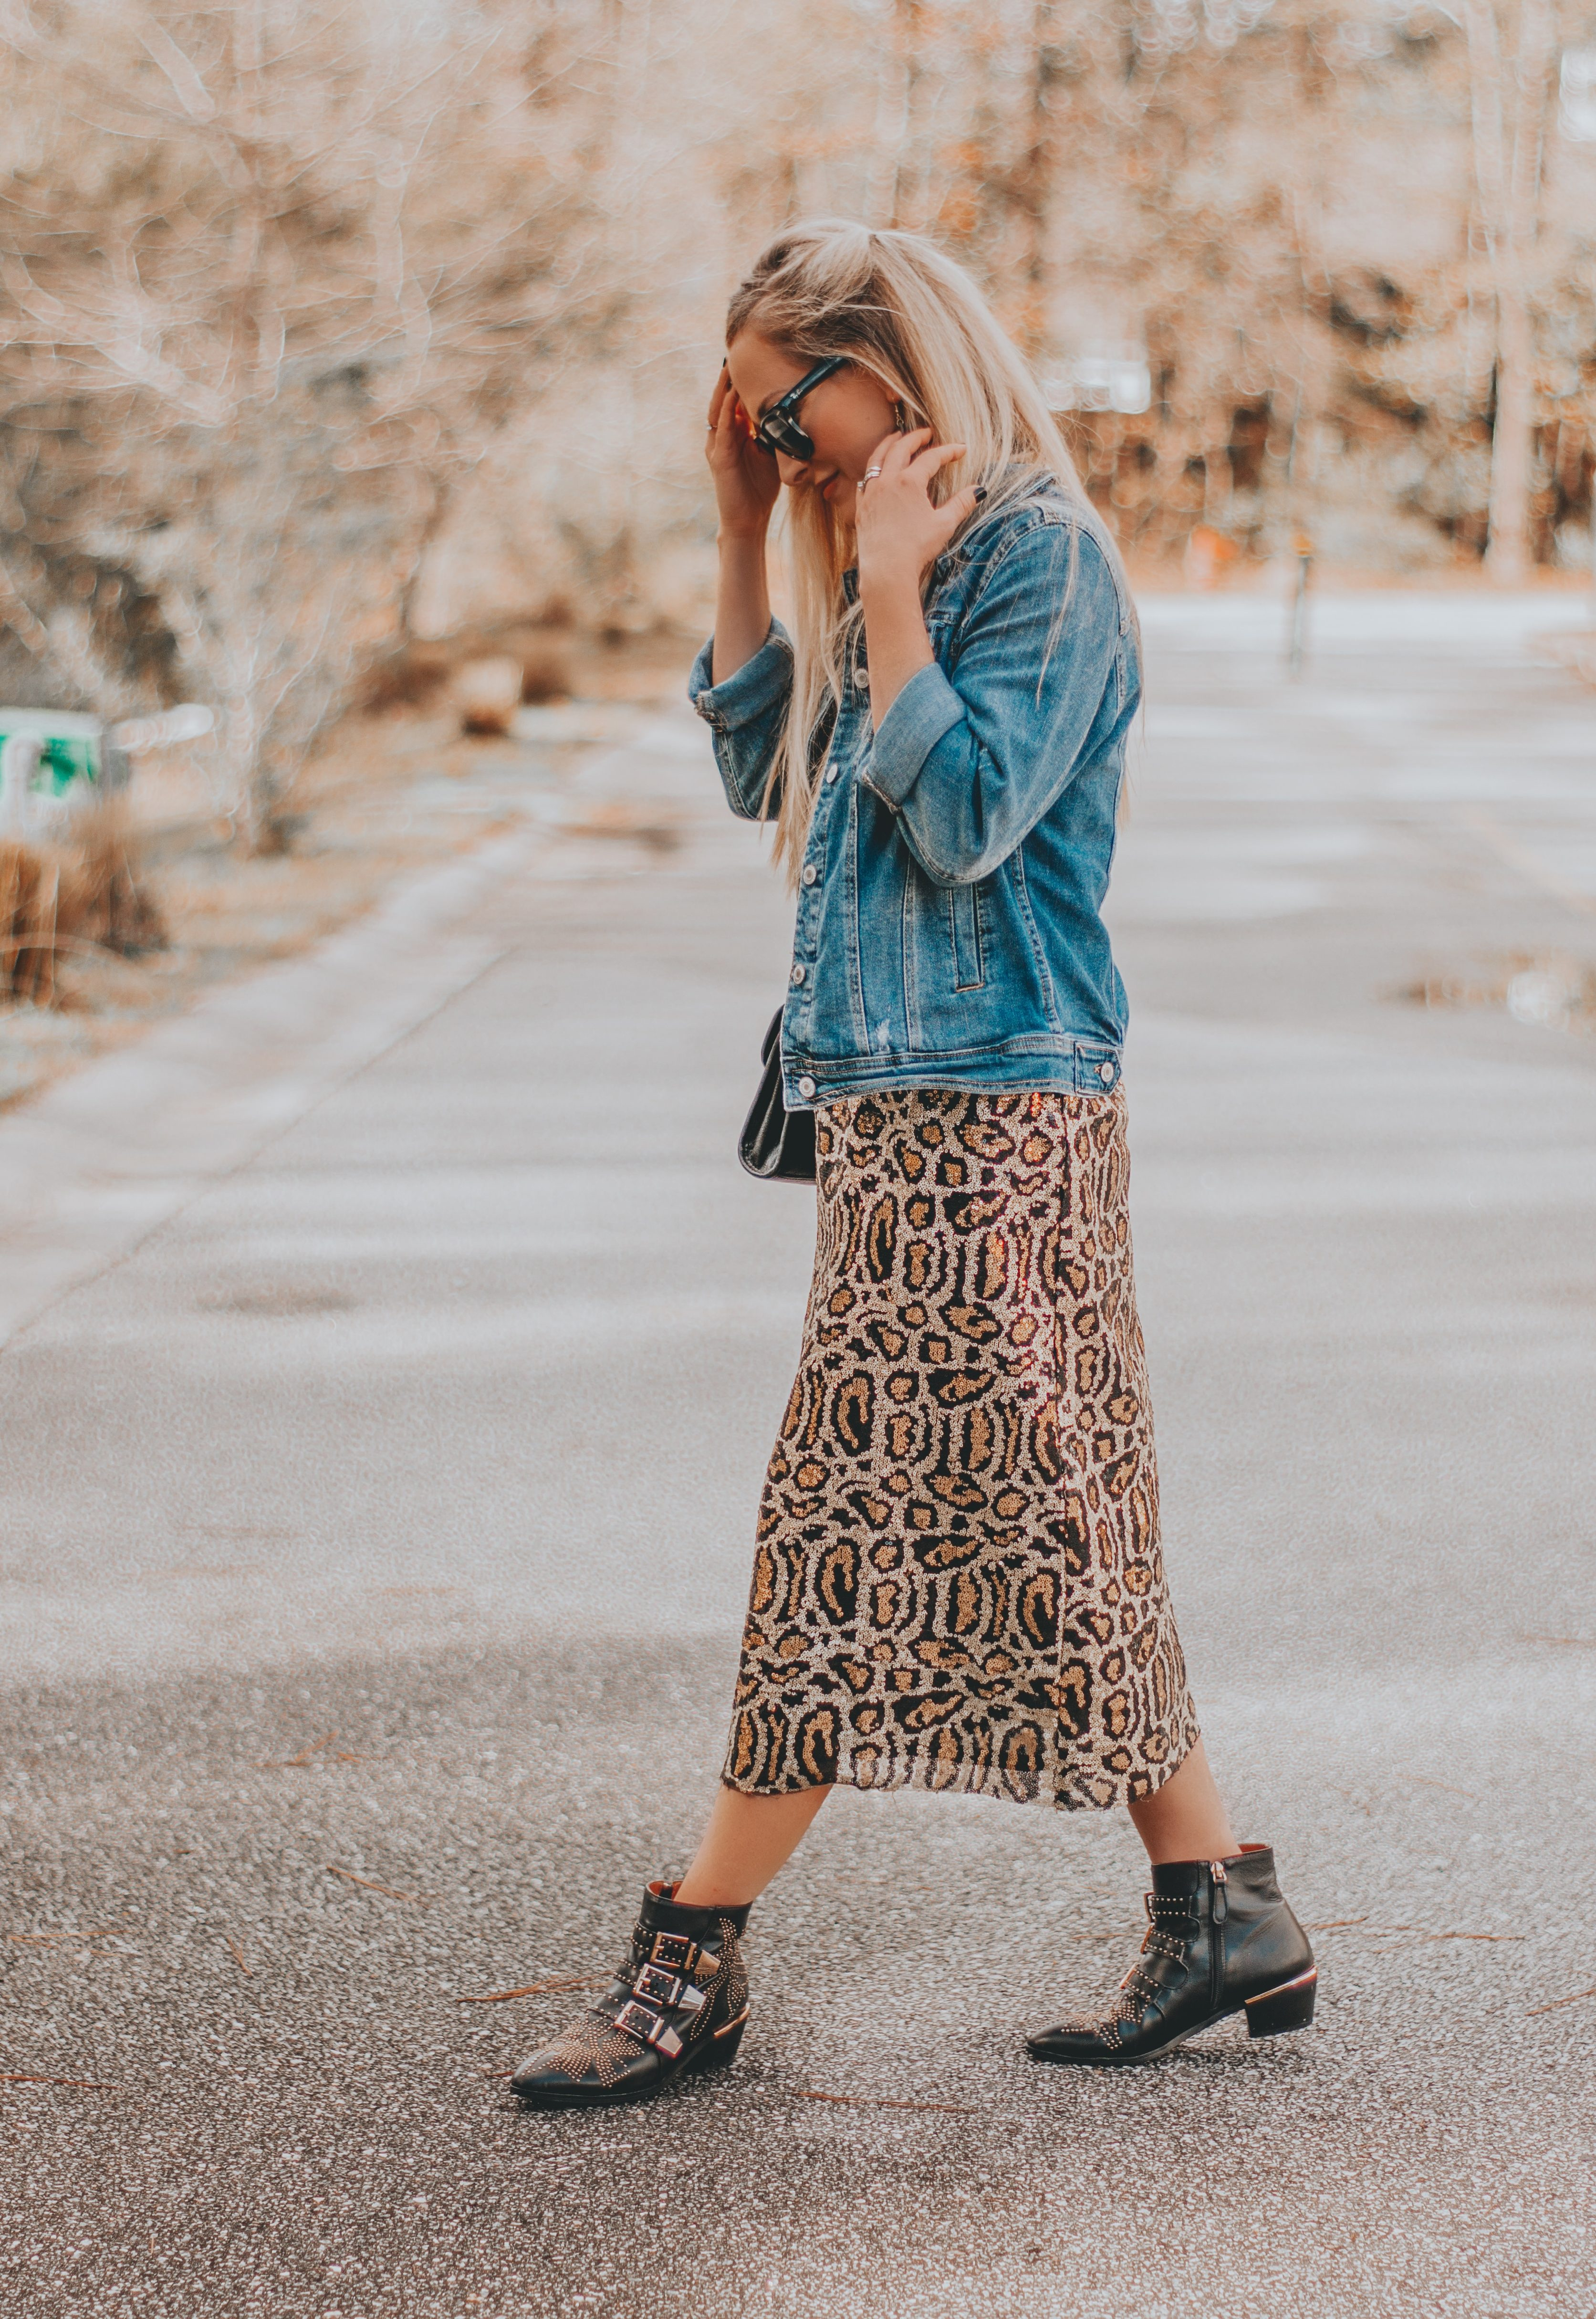 Leopard Sequin Skirt Budget Valentine S Outfit Inspo